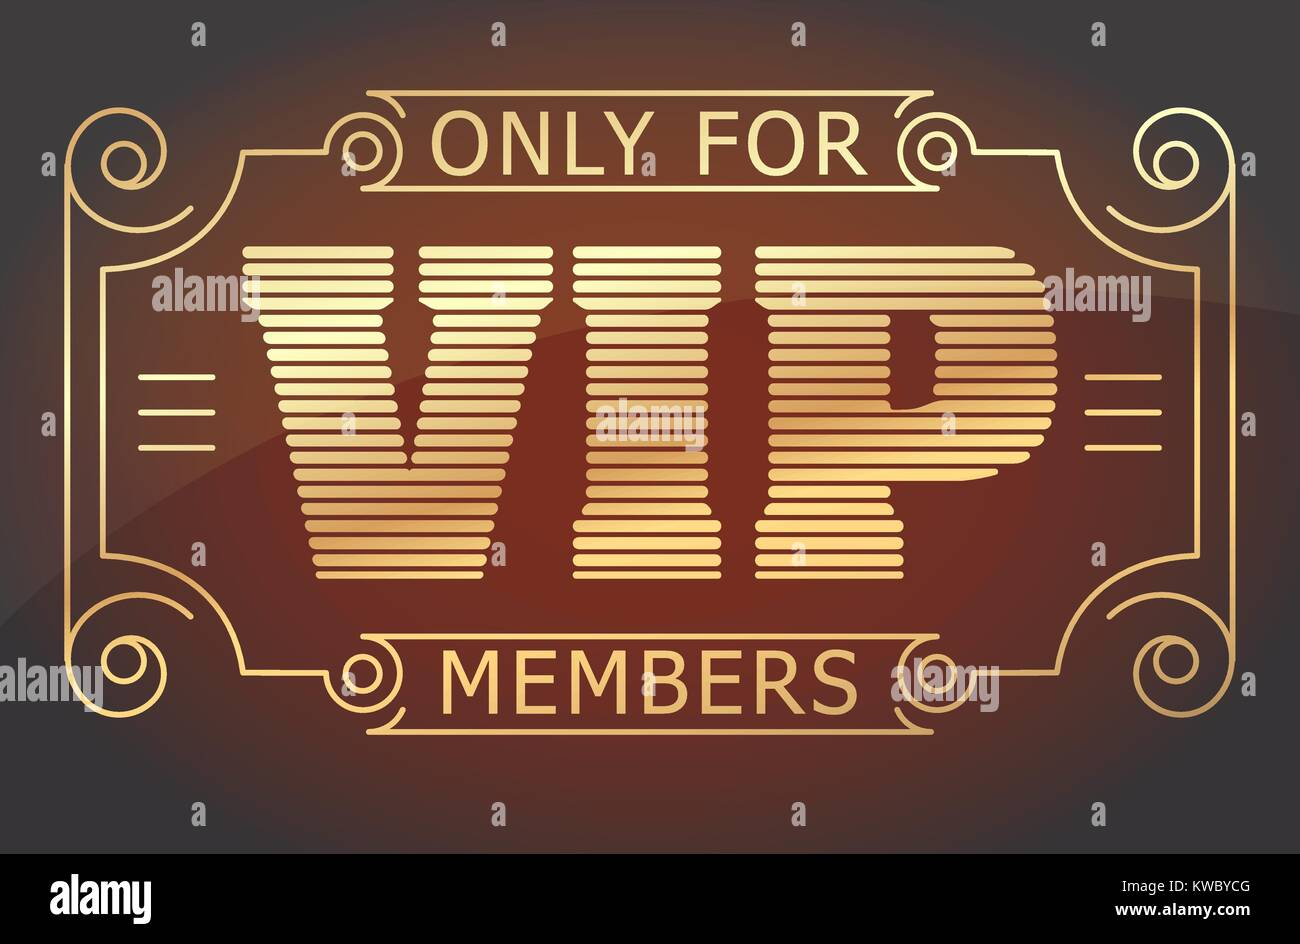 VIP only for members dark red and gold tones design. Vector illustration. - Stock Vector